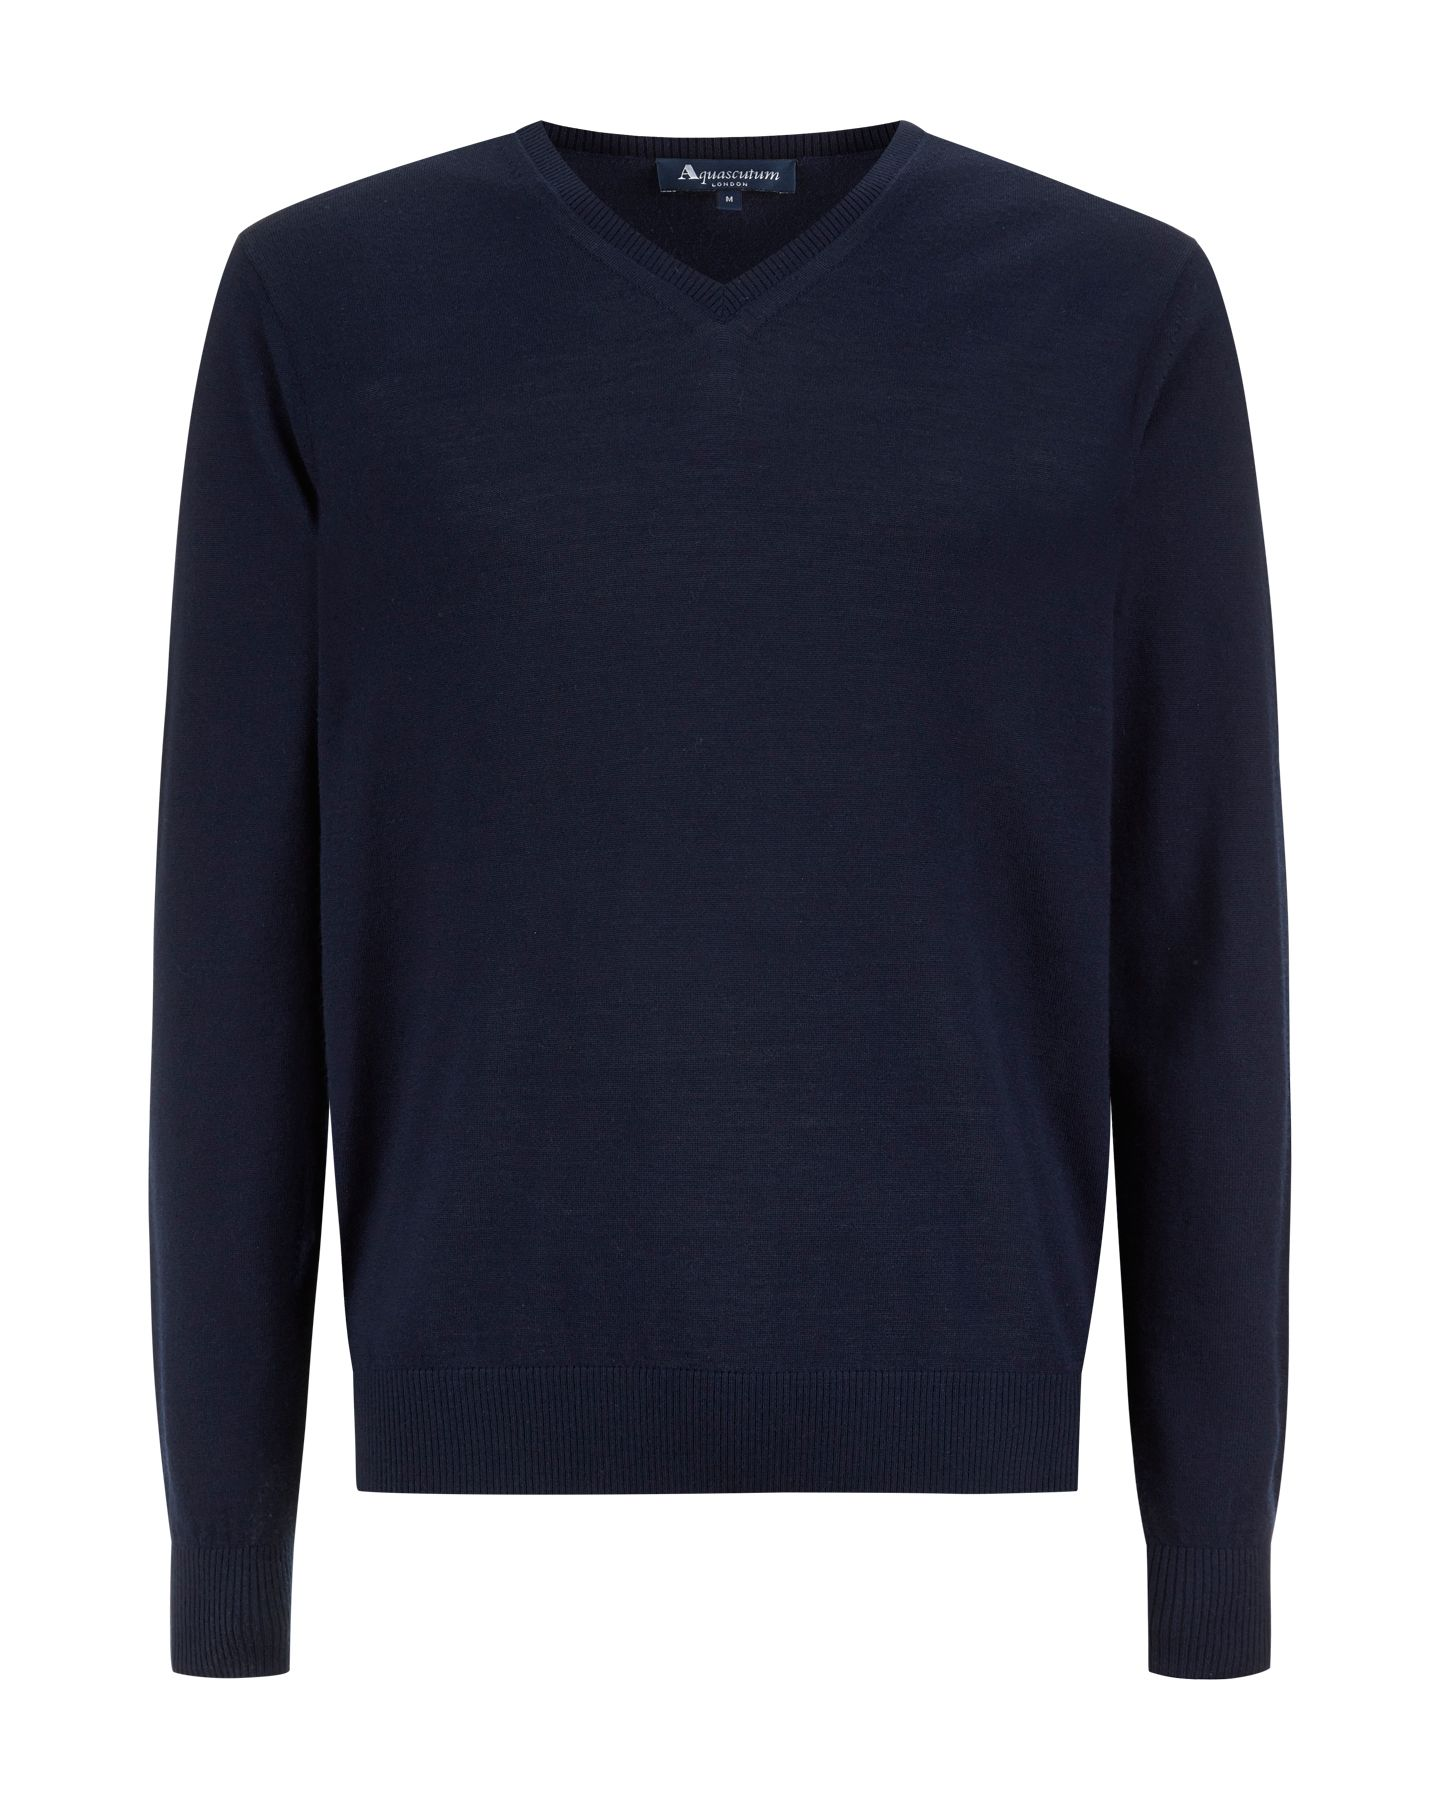 Wentworth v-neck knit